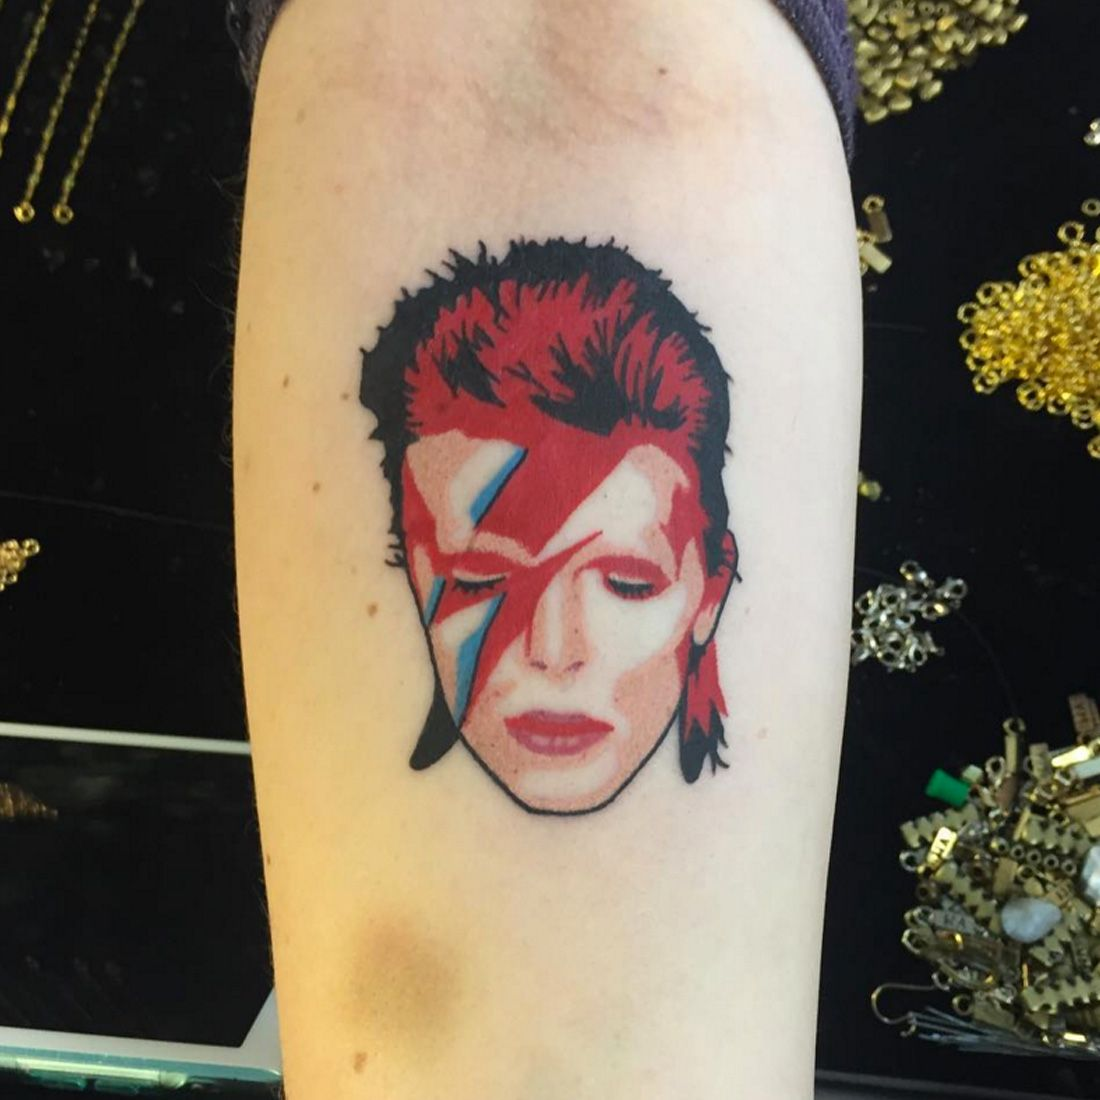 29 Hunky-Dory Tattoos That Pay Homage to David Bowie